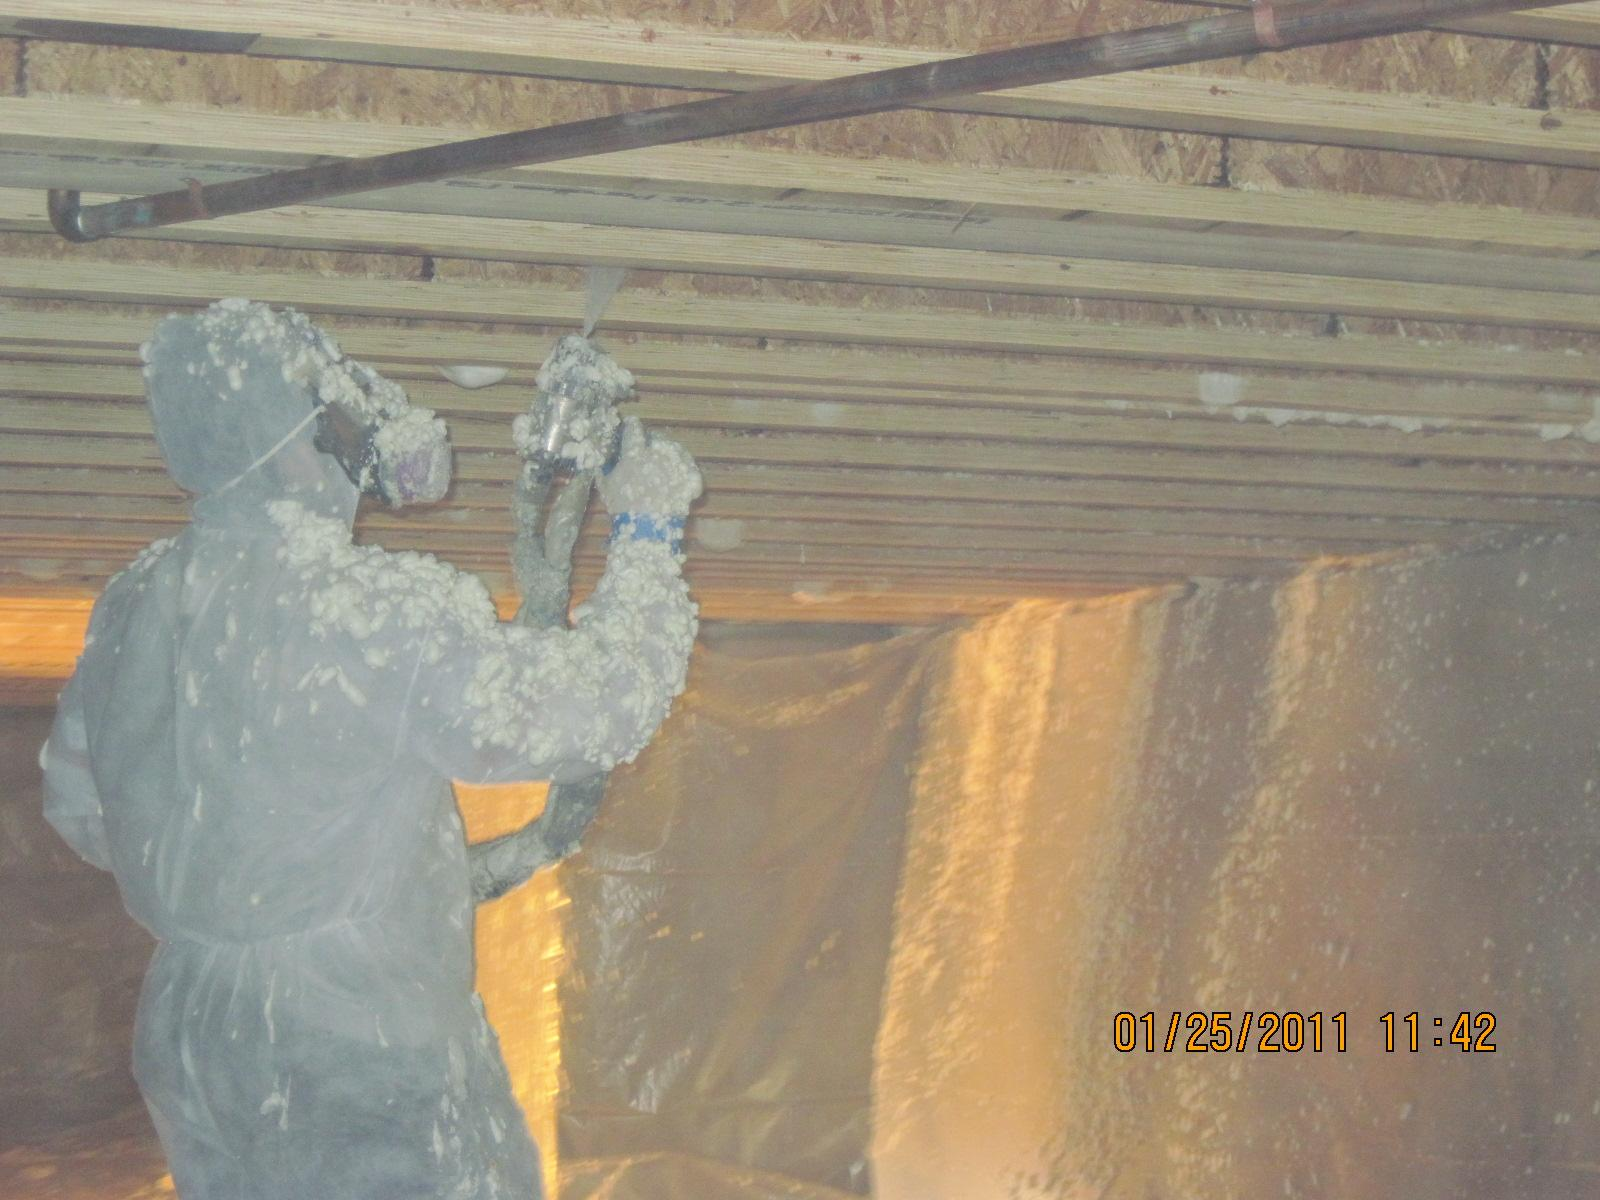 High Crawl Space gets disconnected by spray foam!